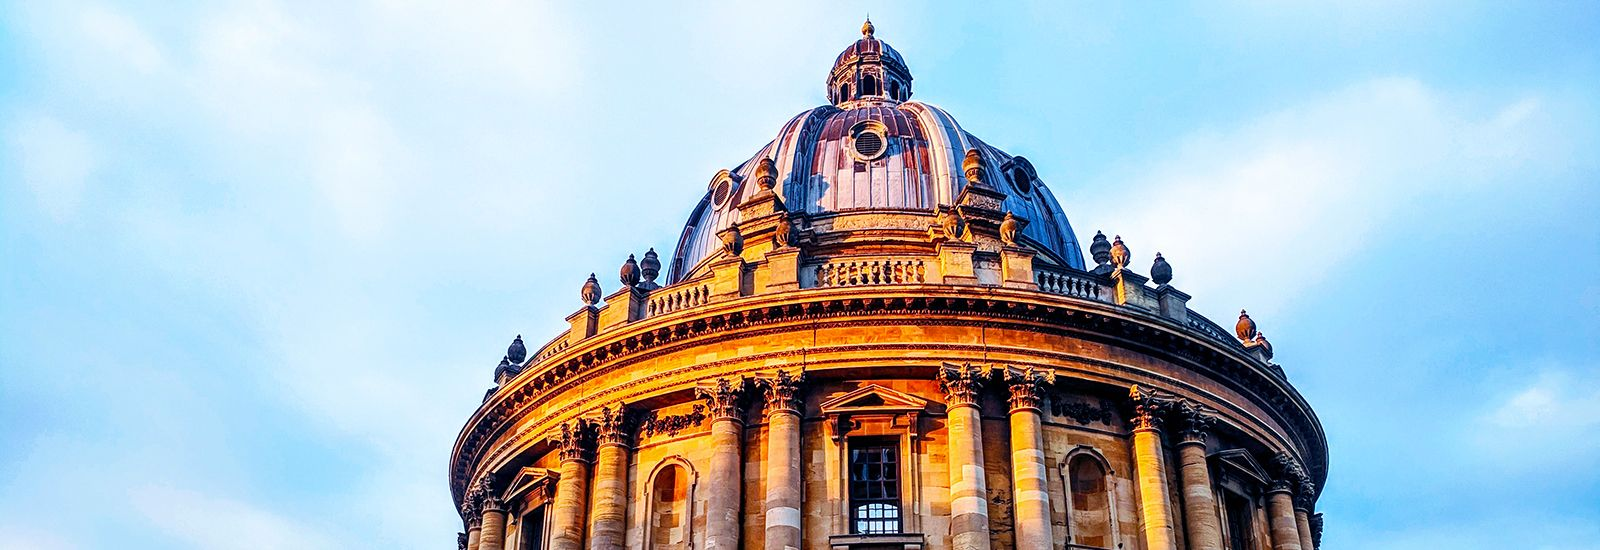 The Radcliffe Camera against a blue sky